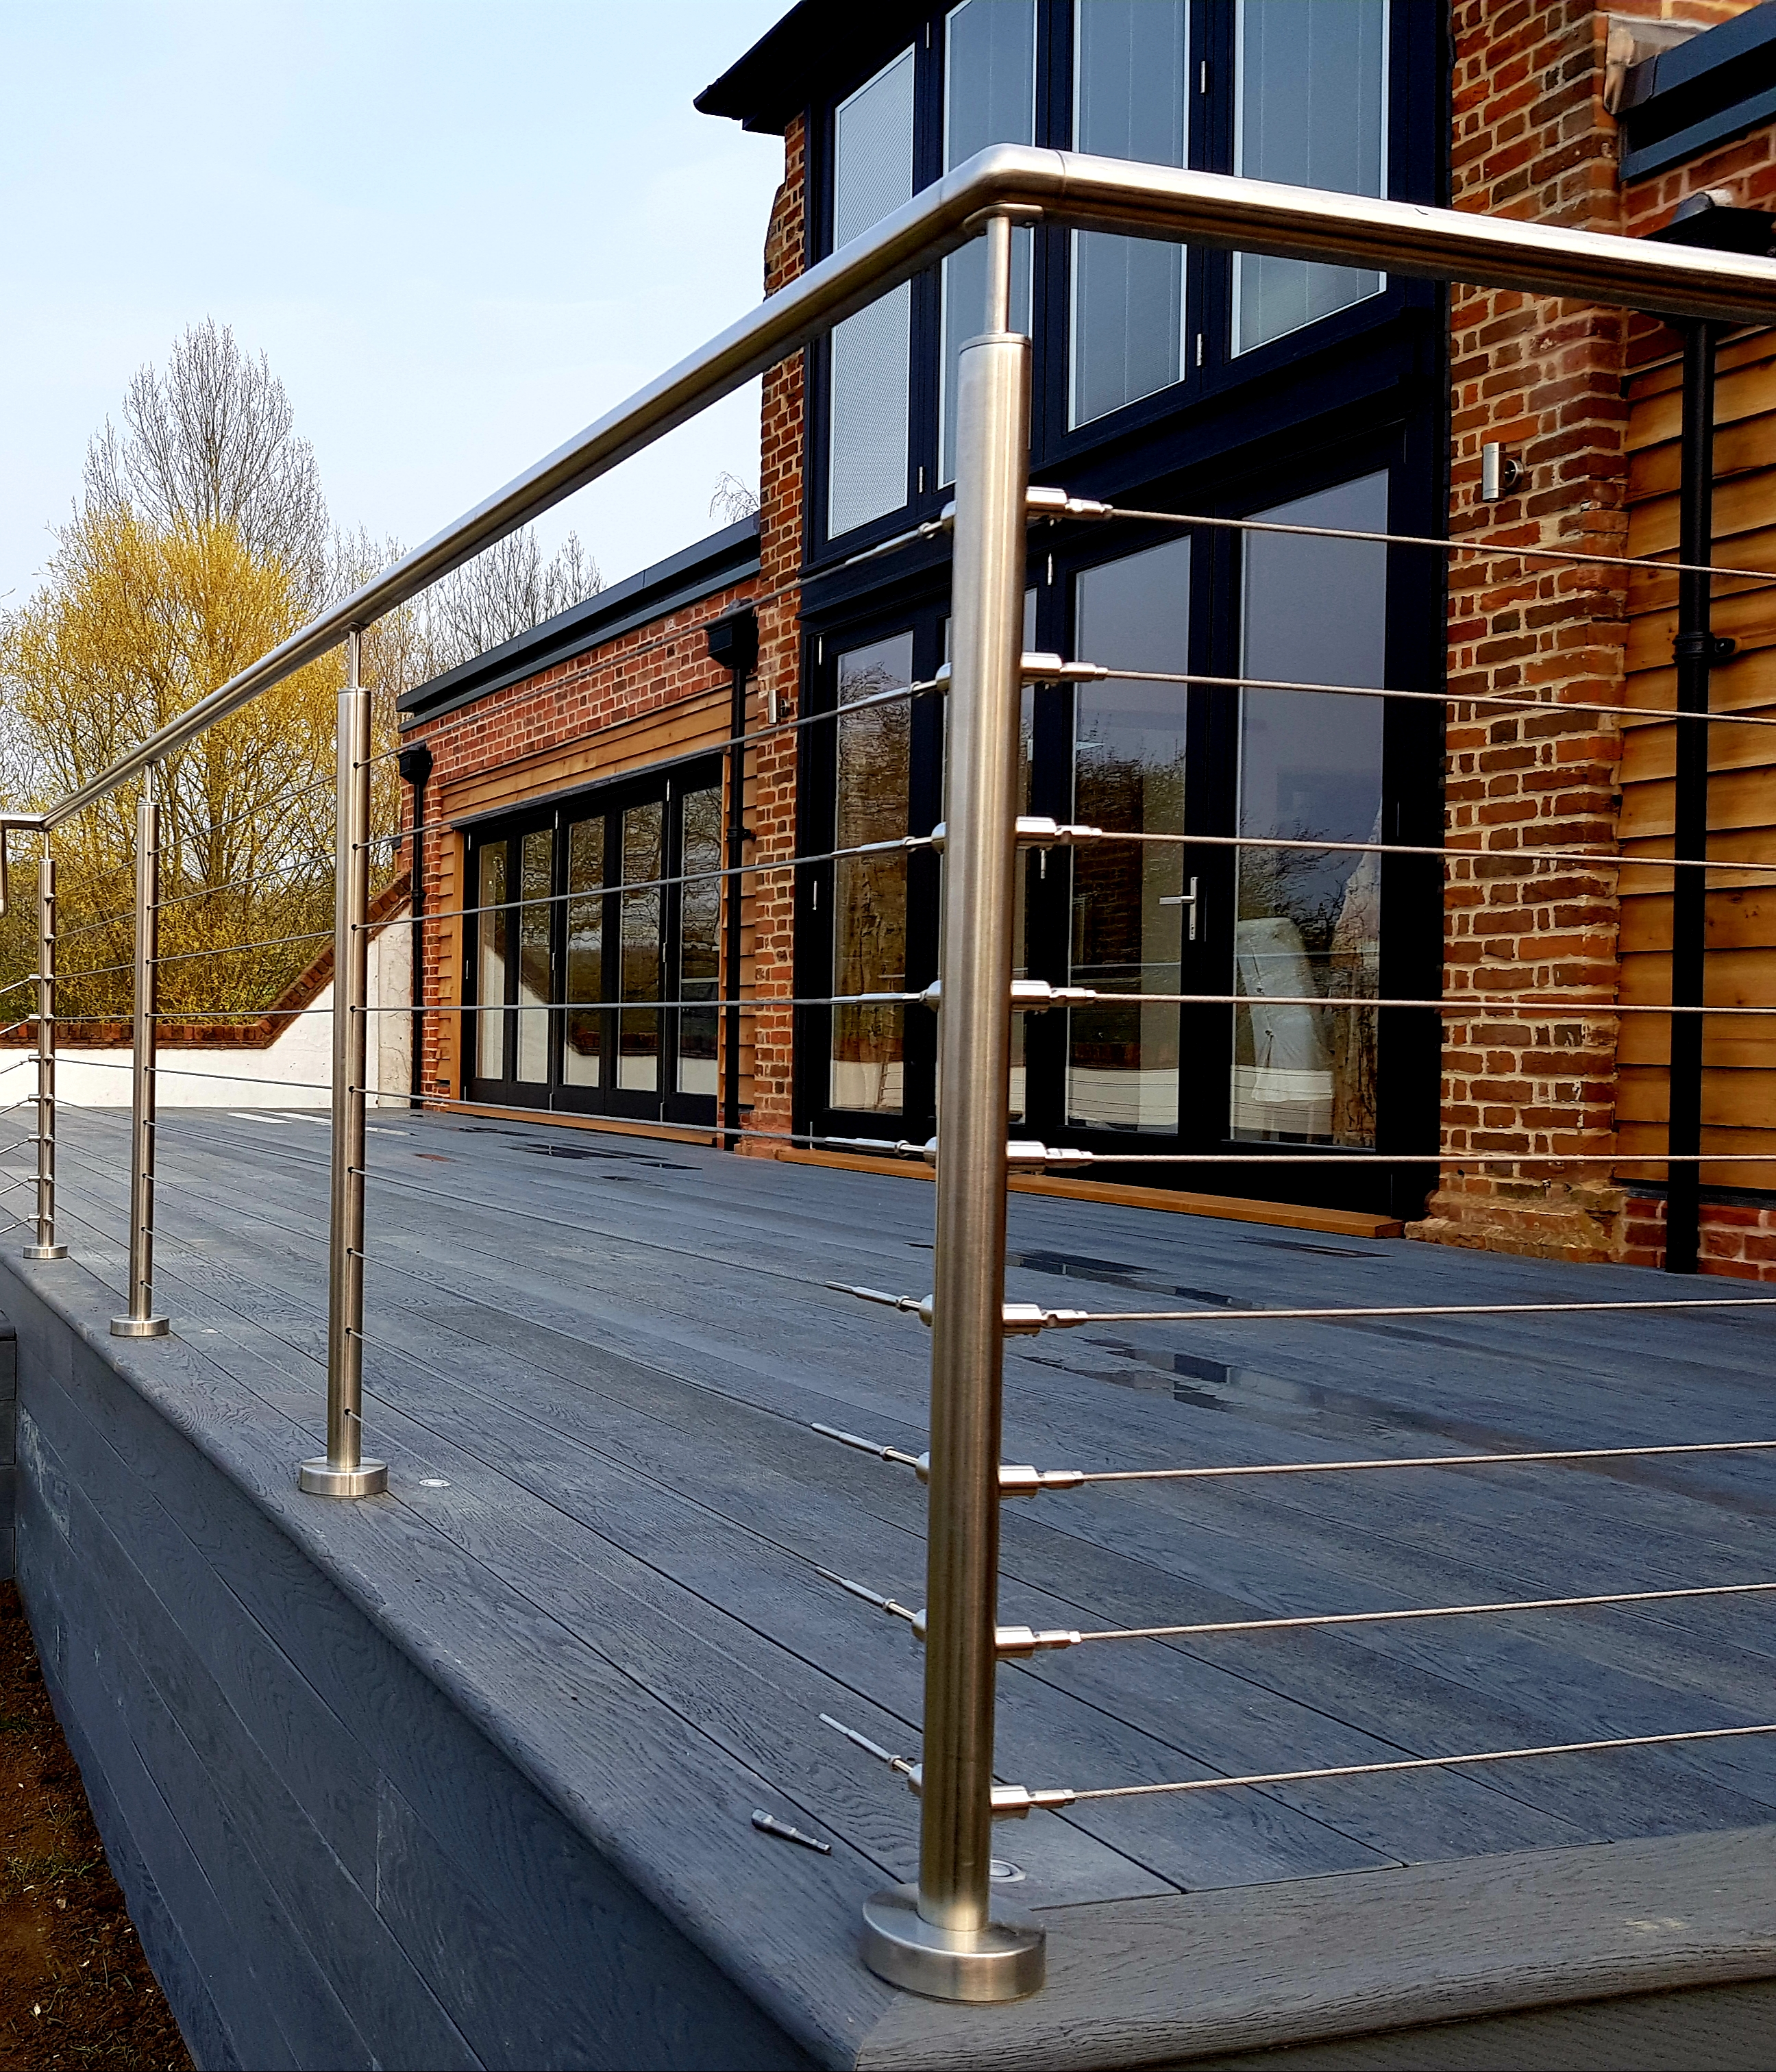 Steel deck handrail